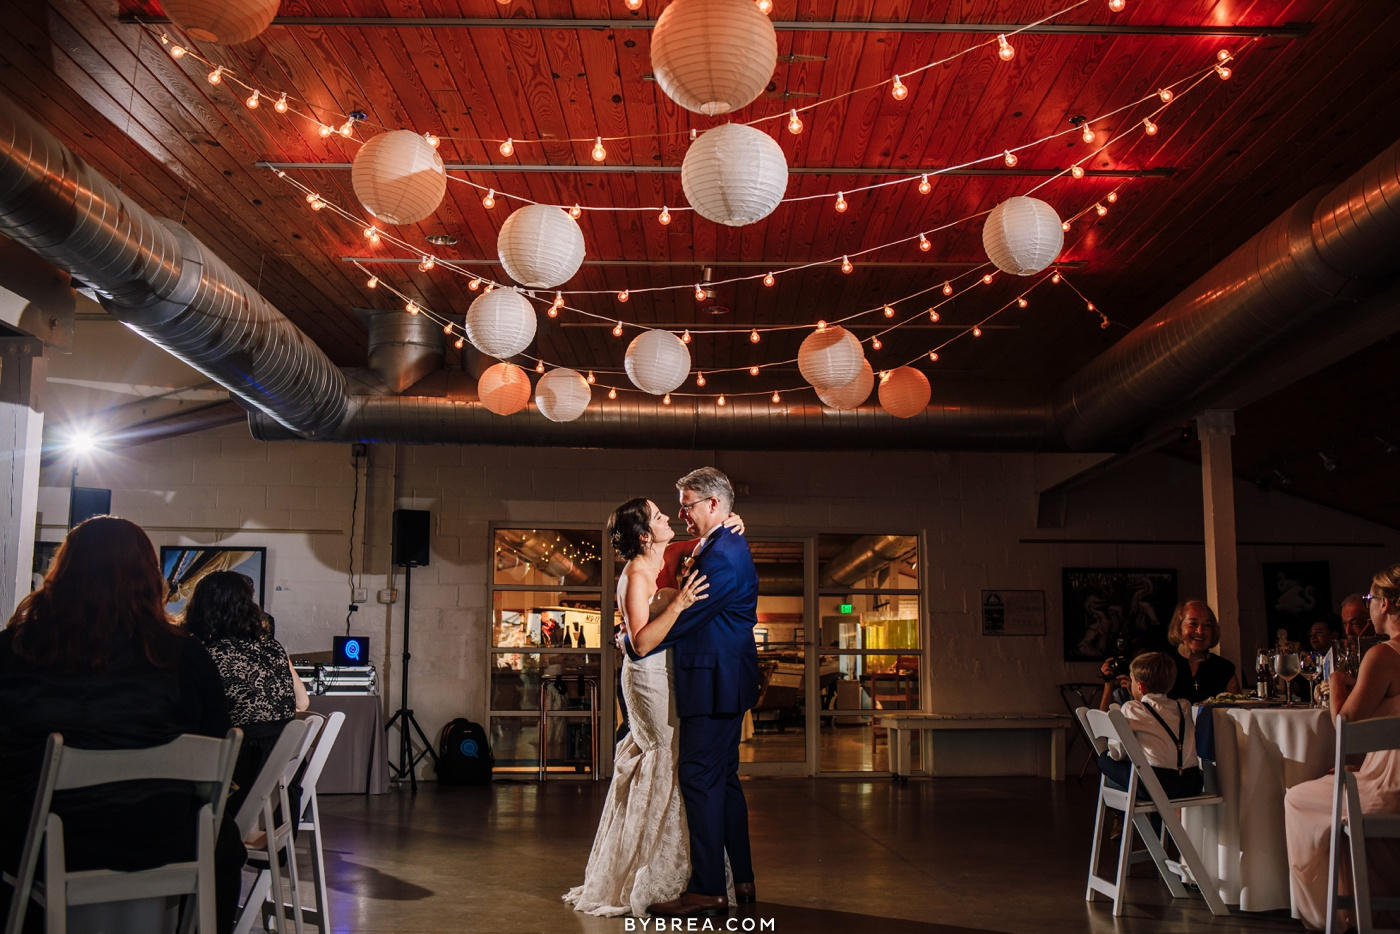 Bride and groom sharing their first dance at their wedding reception at the Annapolis Maritime Museum.